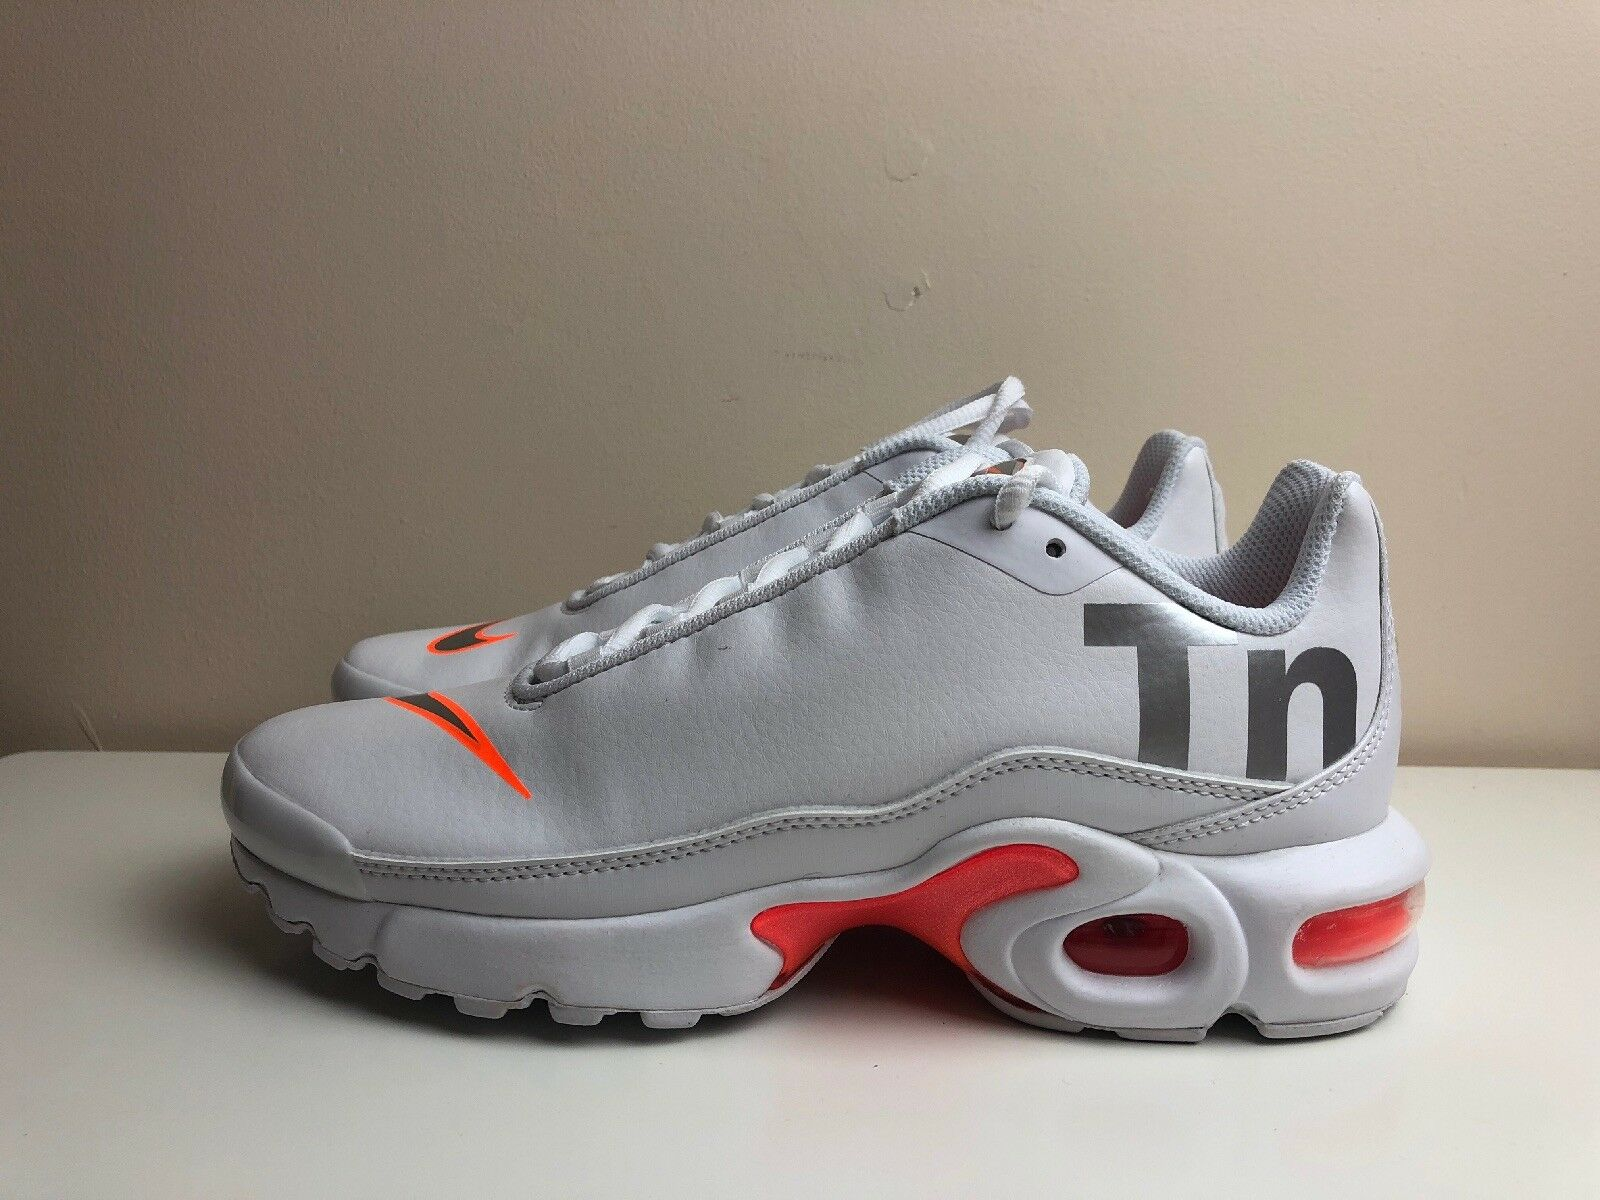 Nike Air Max Plus TN SE BG GS Blanc5 EUR 38 AR0005 100